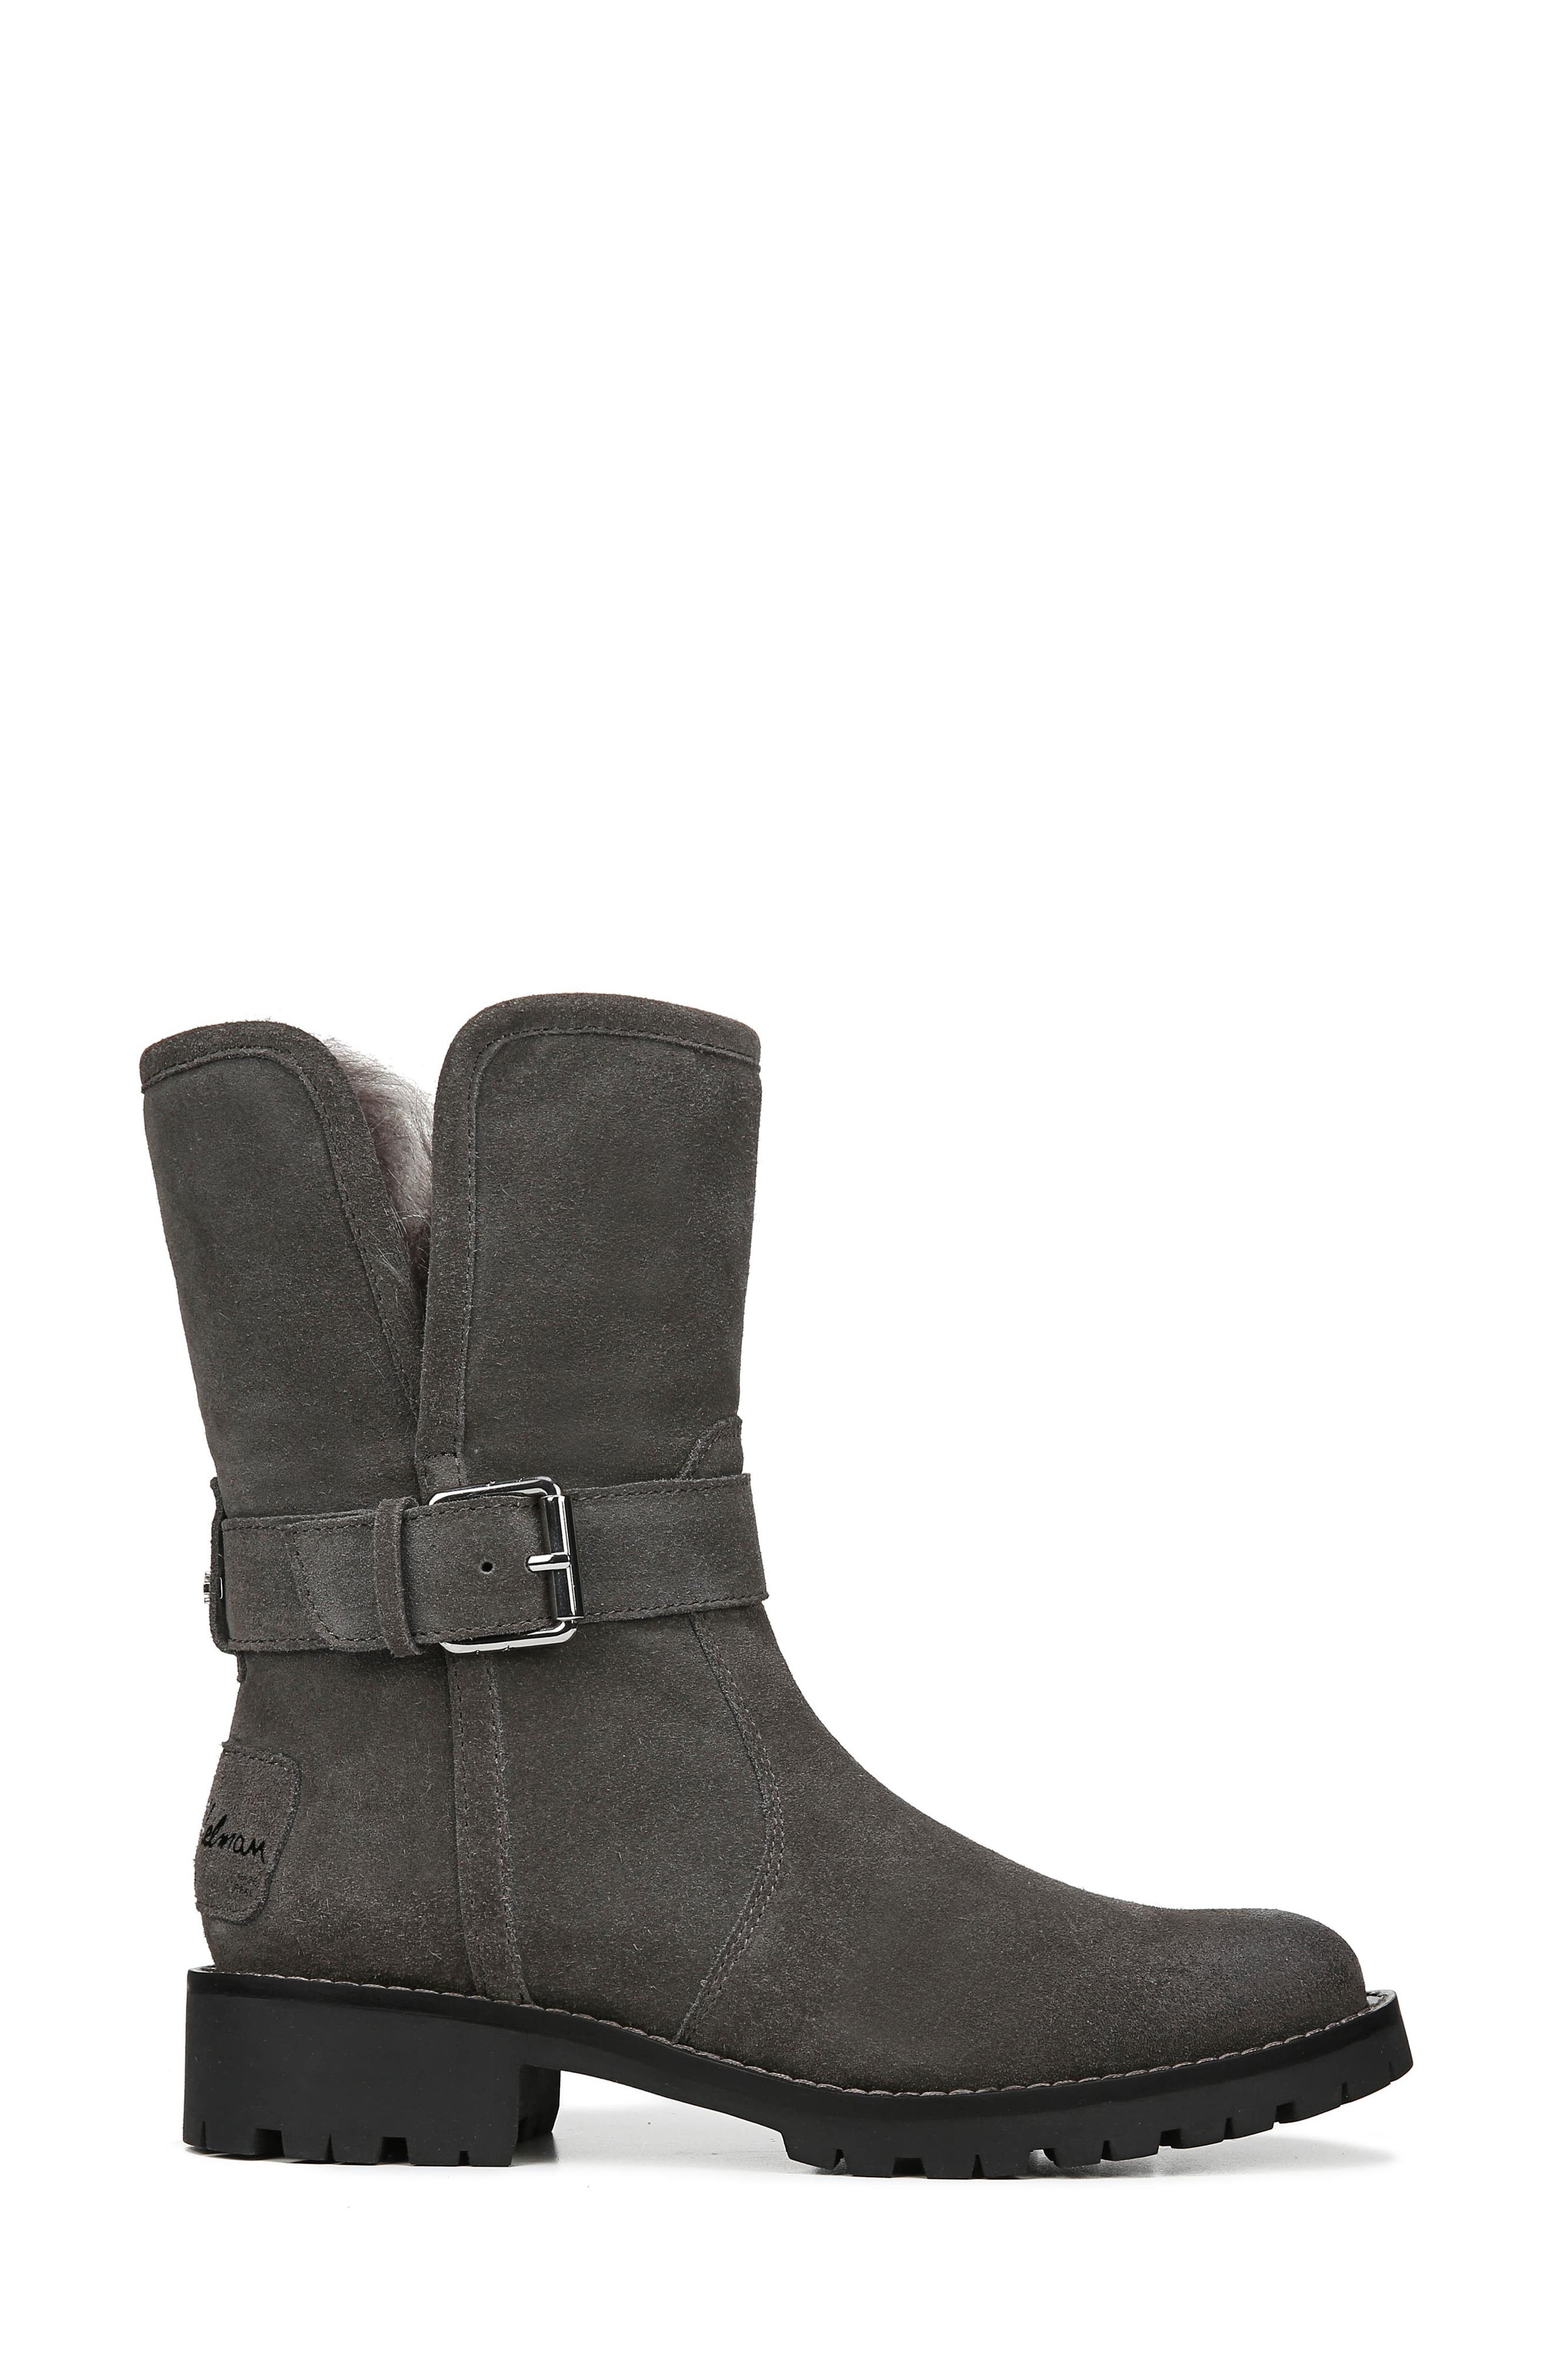 Jeanie Boot,                             Alternate thumbnail 3, color,                             STEEL GREY SUEDE